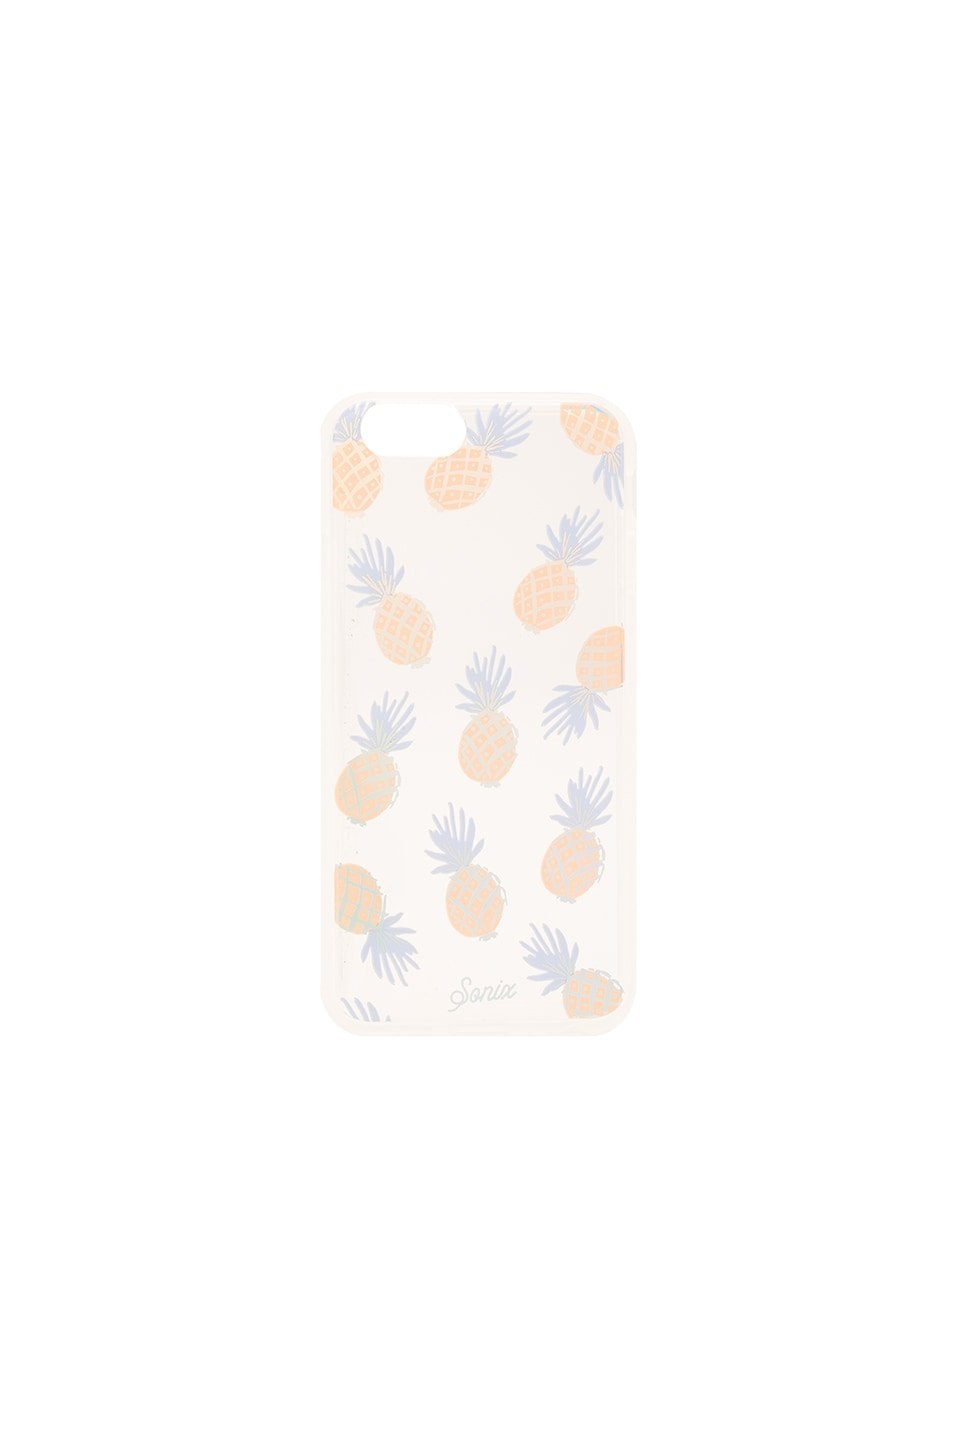 Sonix Rainbow Pineapple iPhone 6/6s Case in Clear